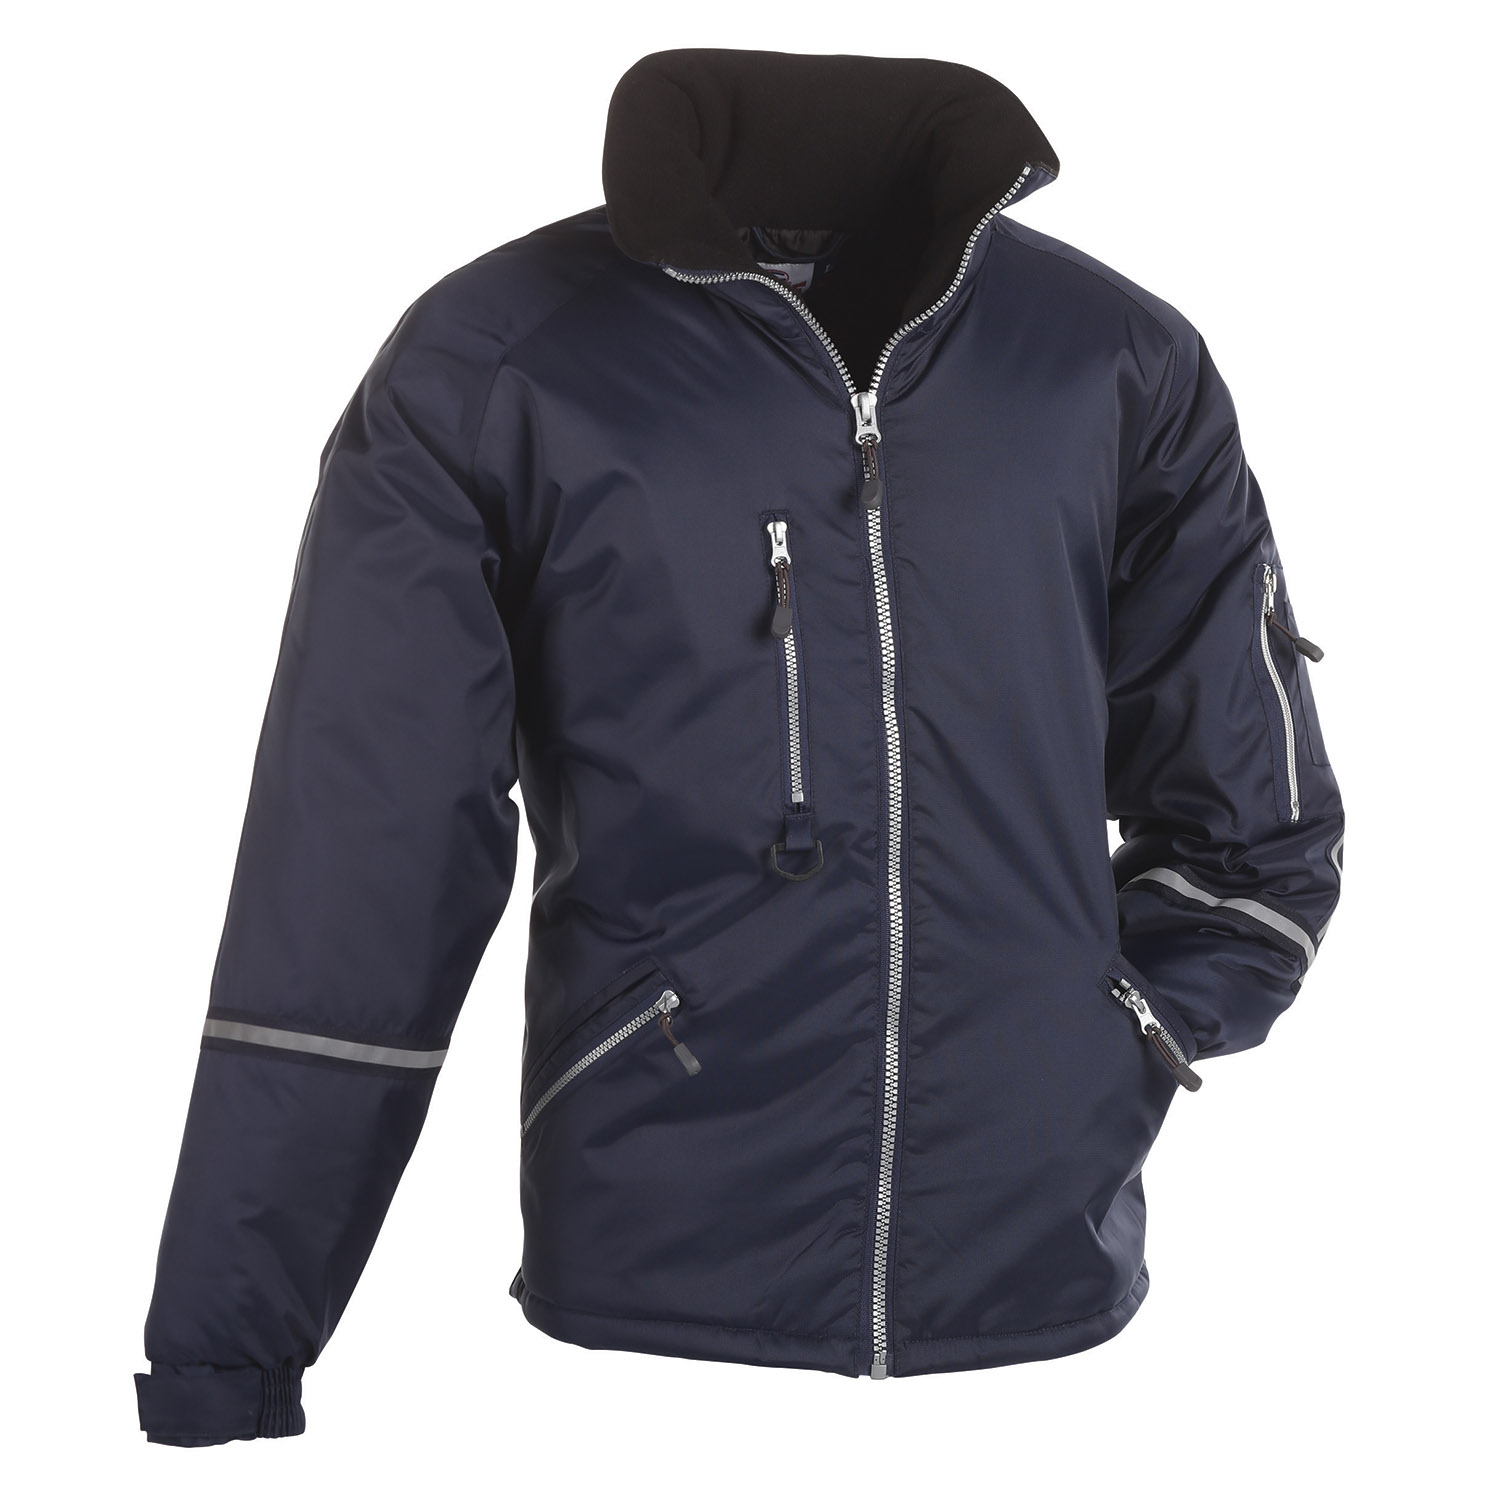 Game Sportswear The Ladder Jacket